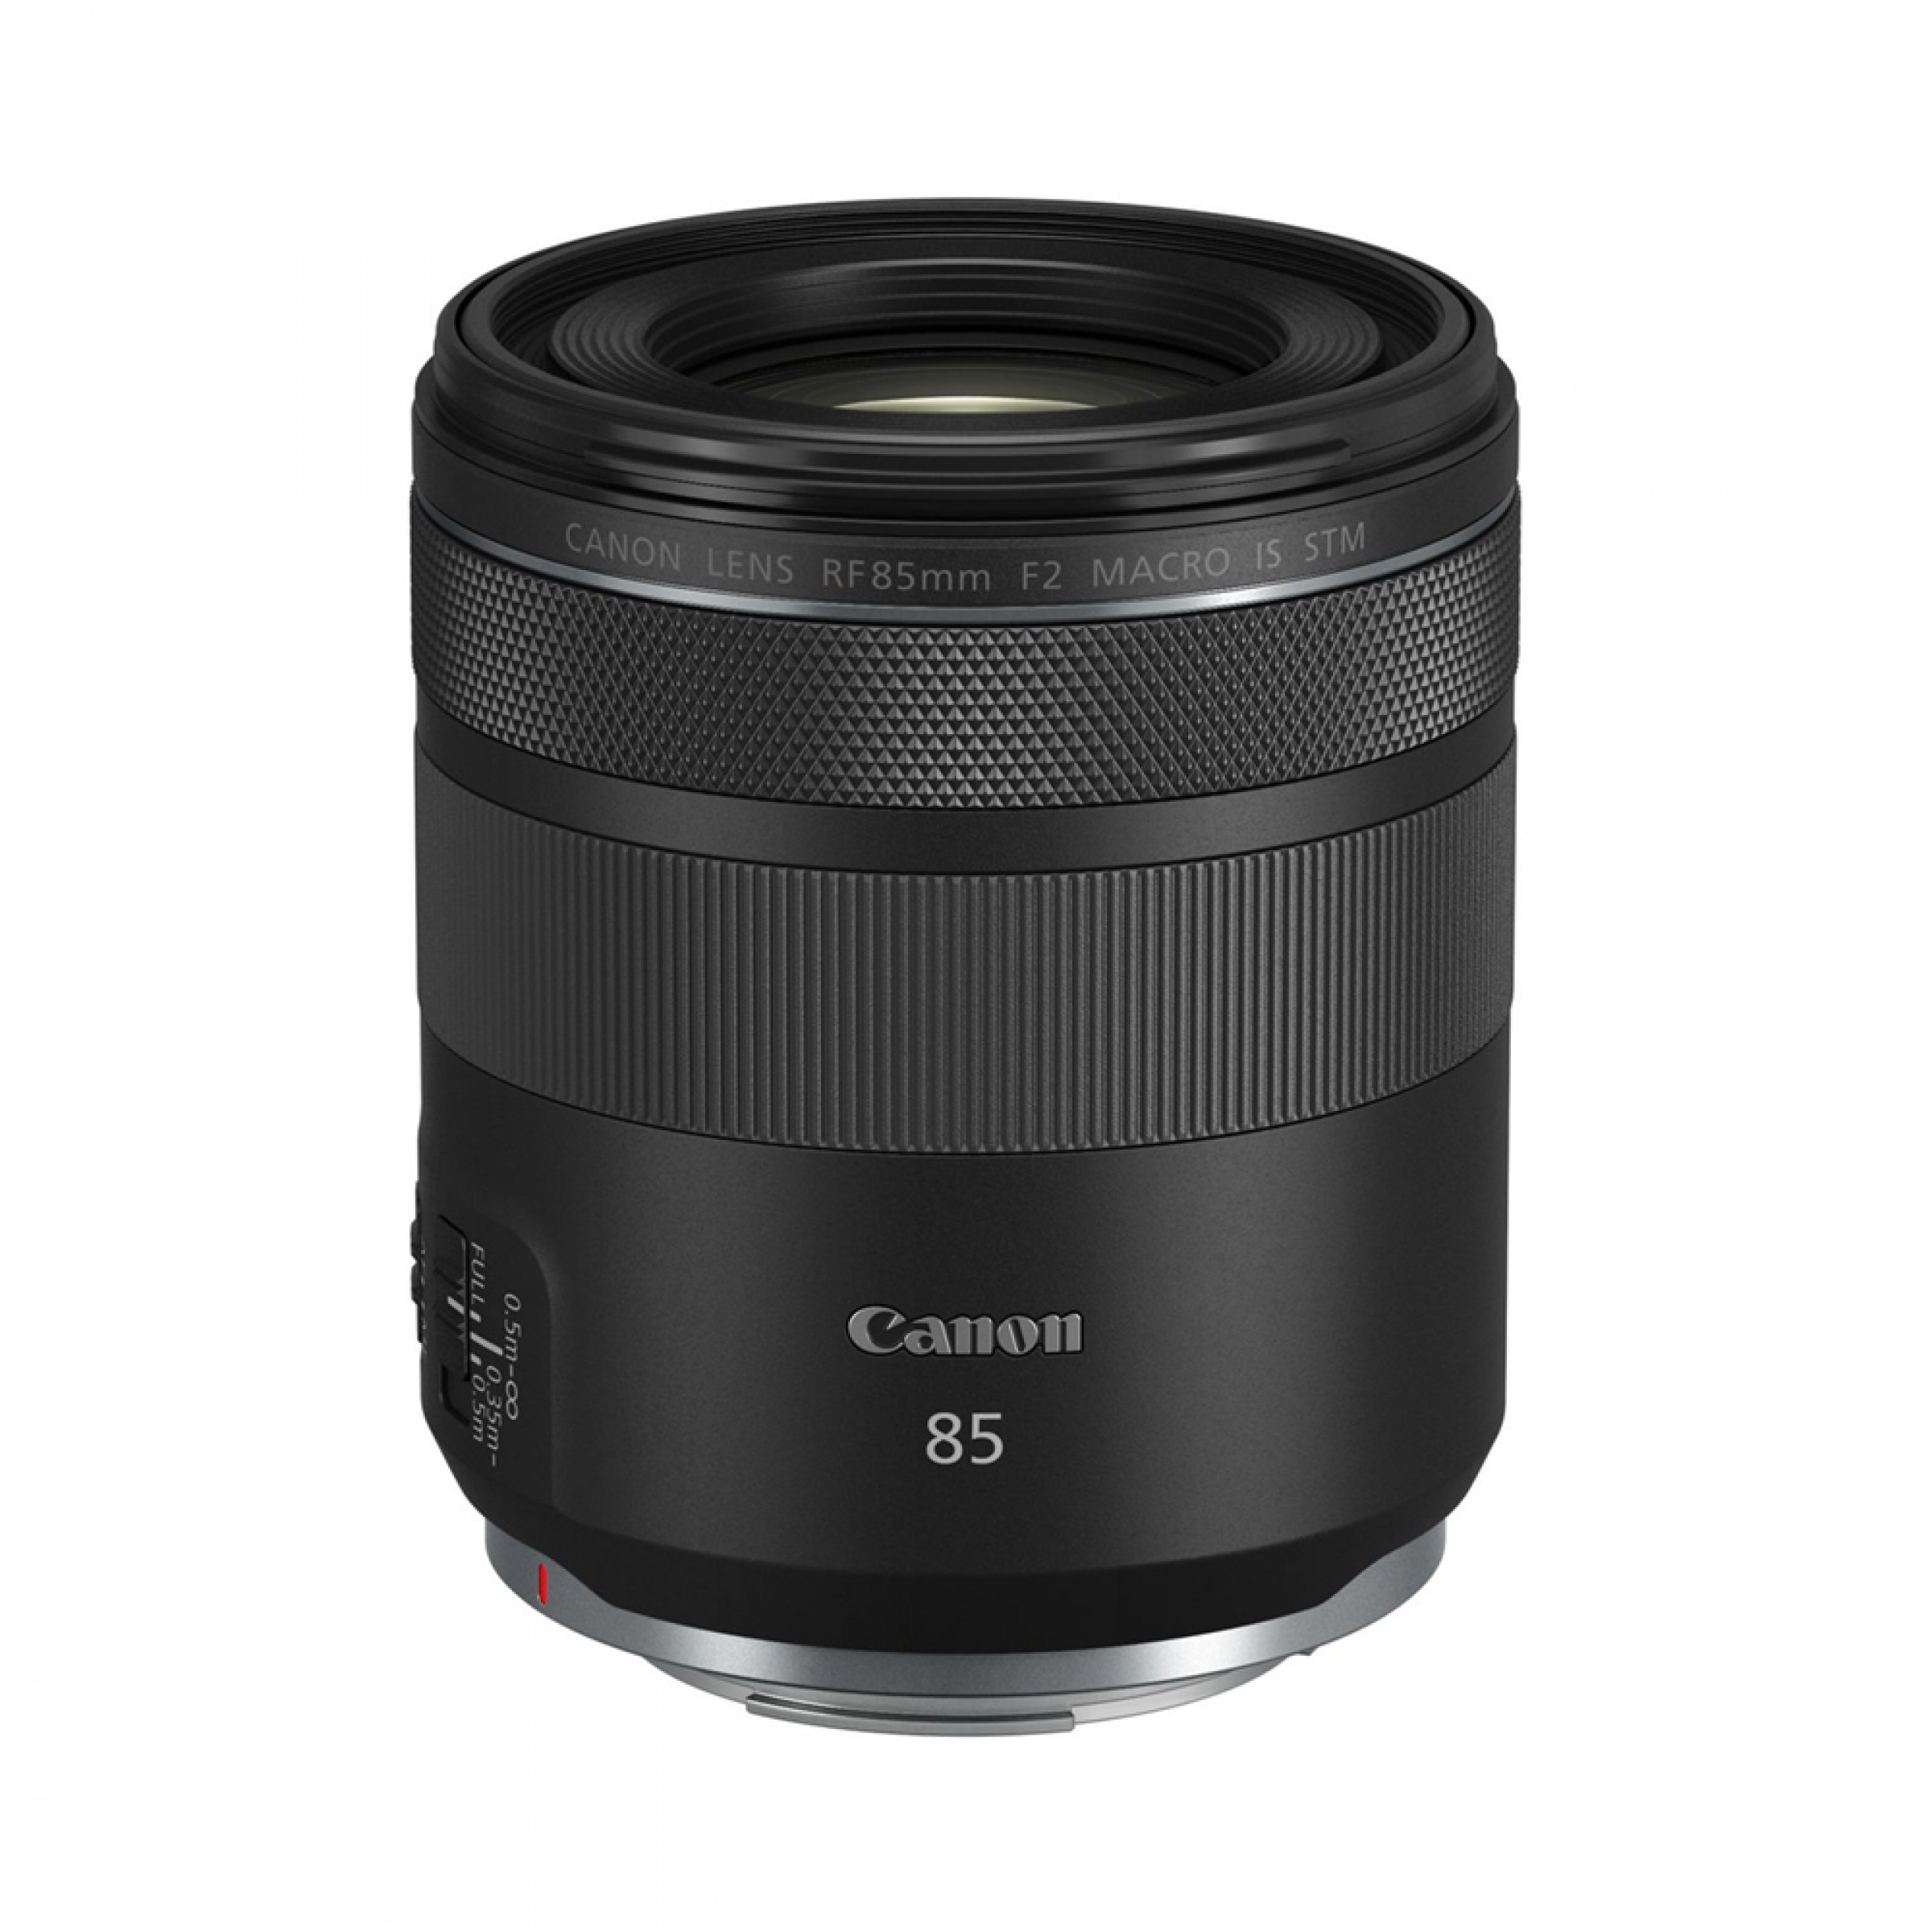 Canon-RF-85mm-F2-Macro-IS-STM